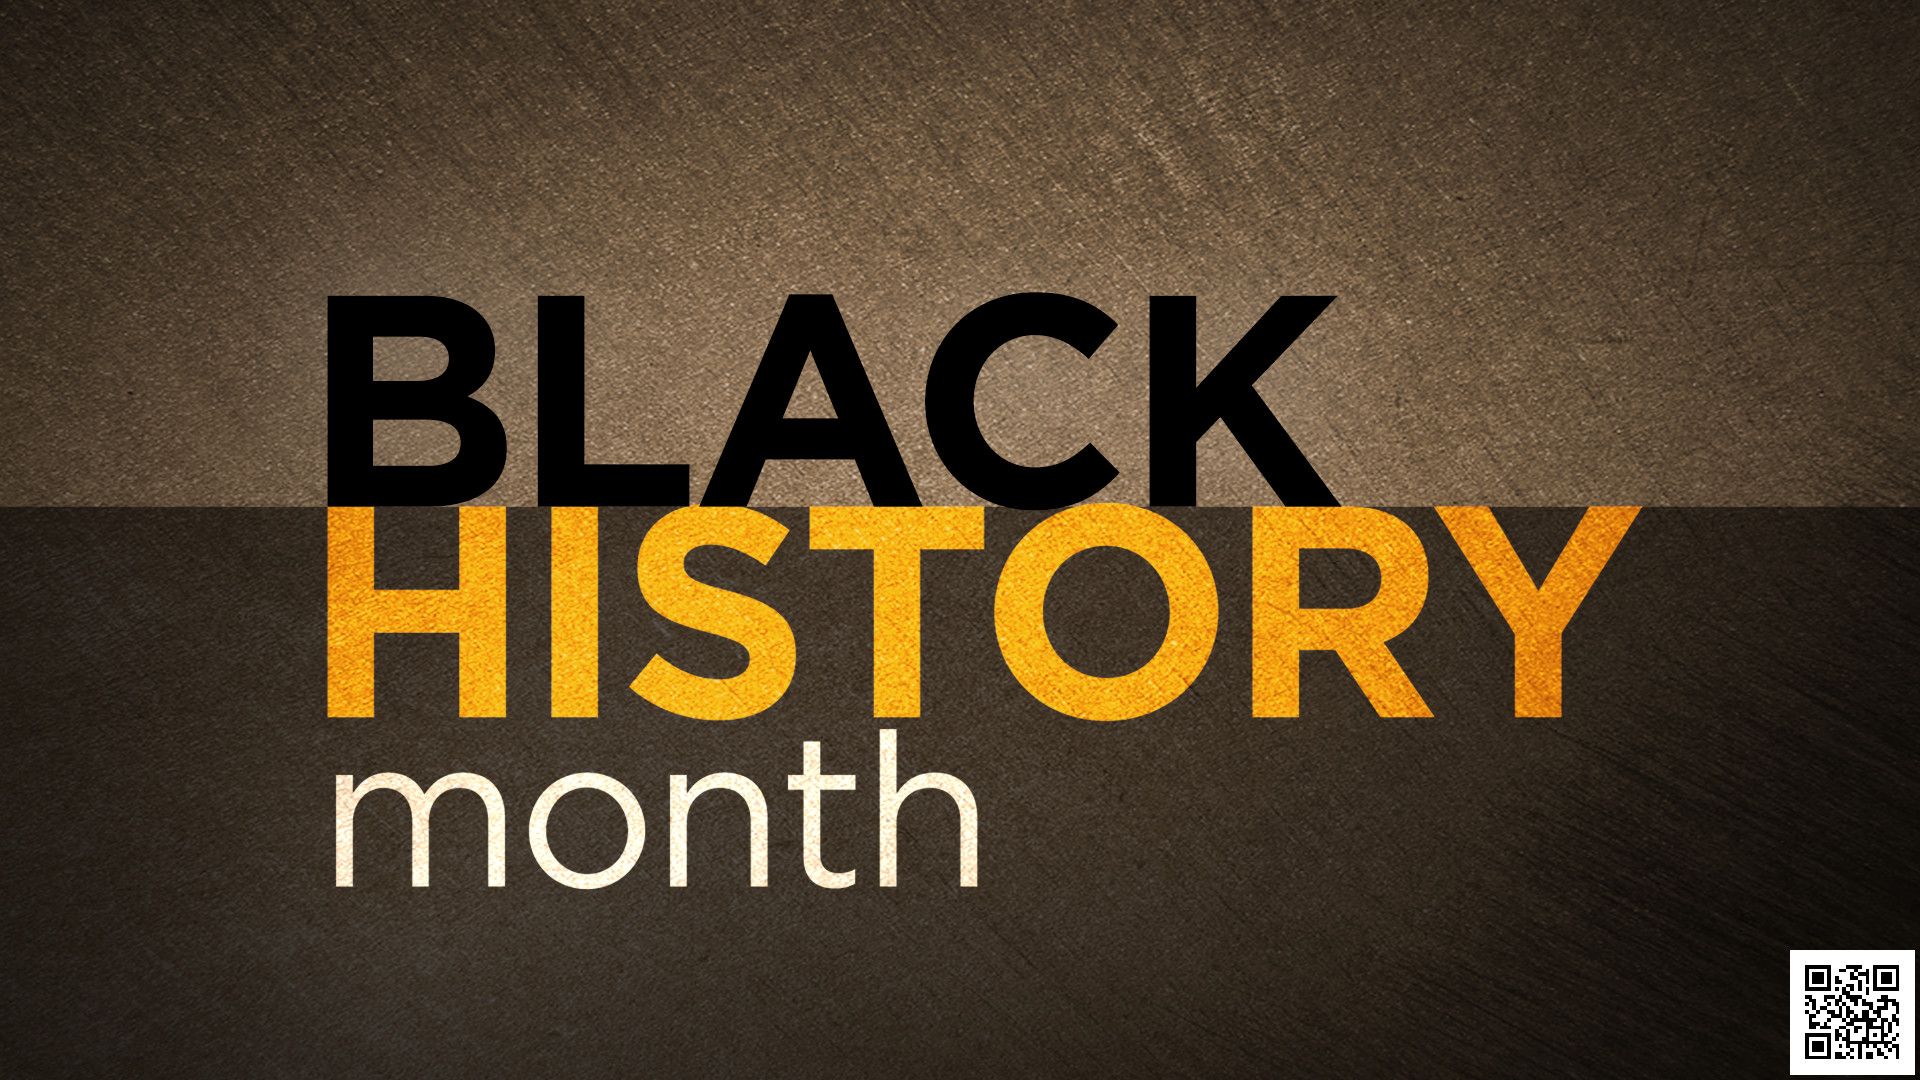 1920x1080 black history month wallpaper - photo #3. Hyperinflation Wikipedia